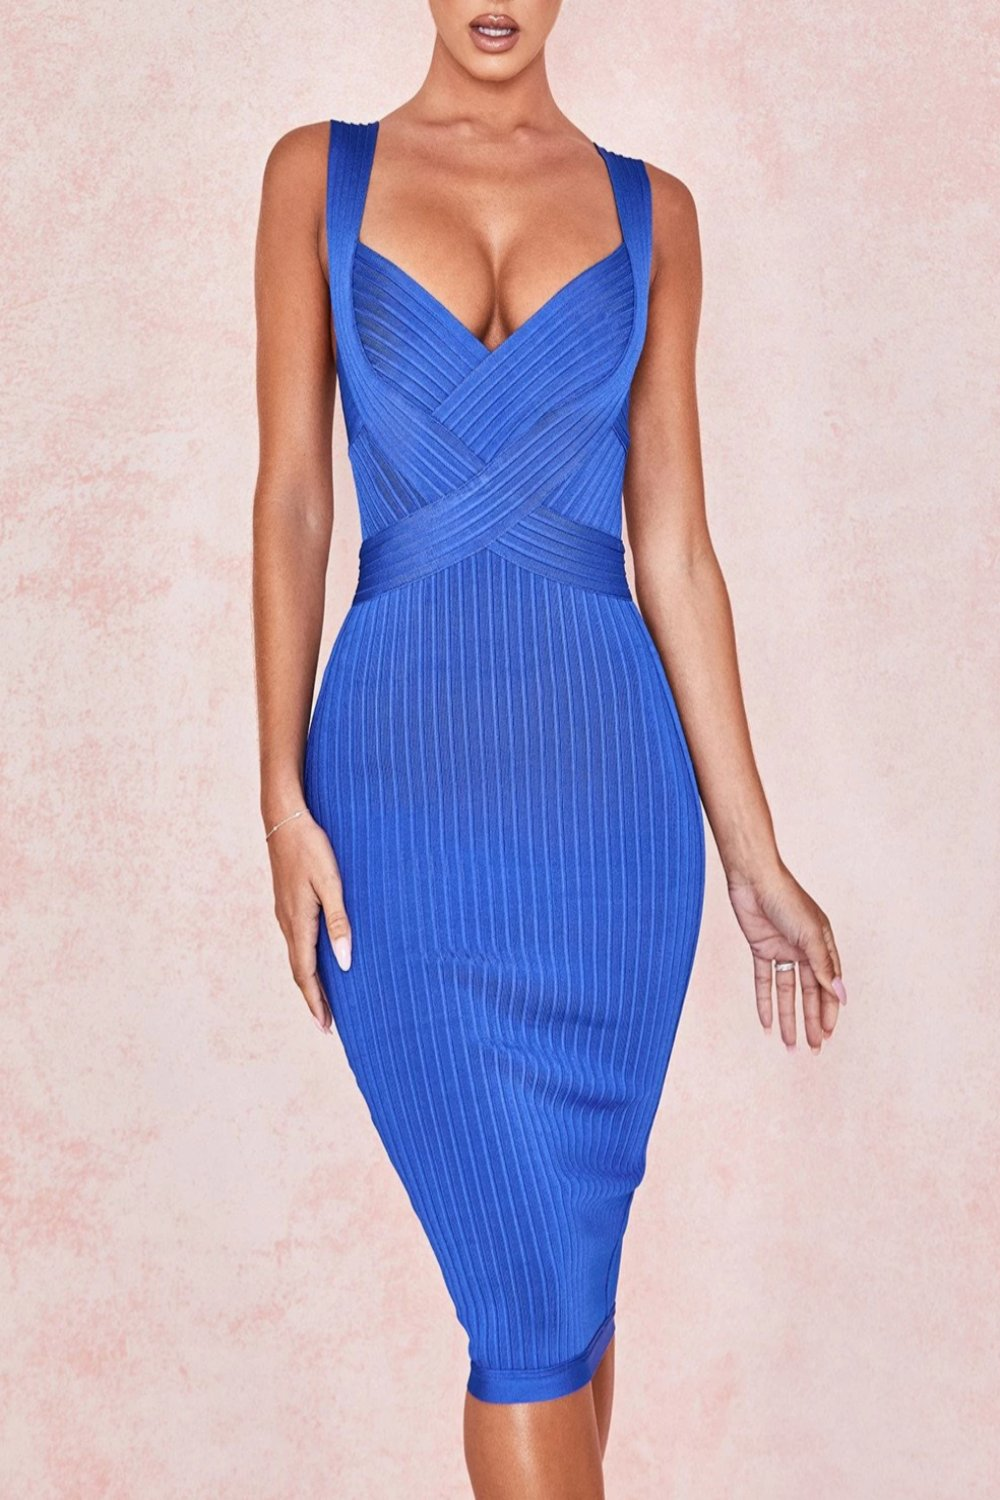 COBALT BLUE CINCH WAIST BANDAGE DRESS